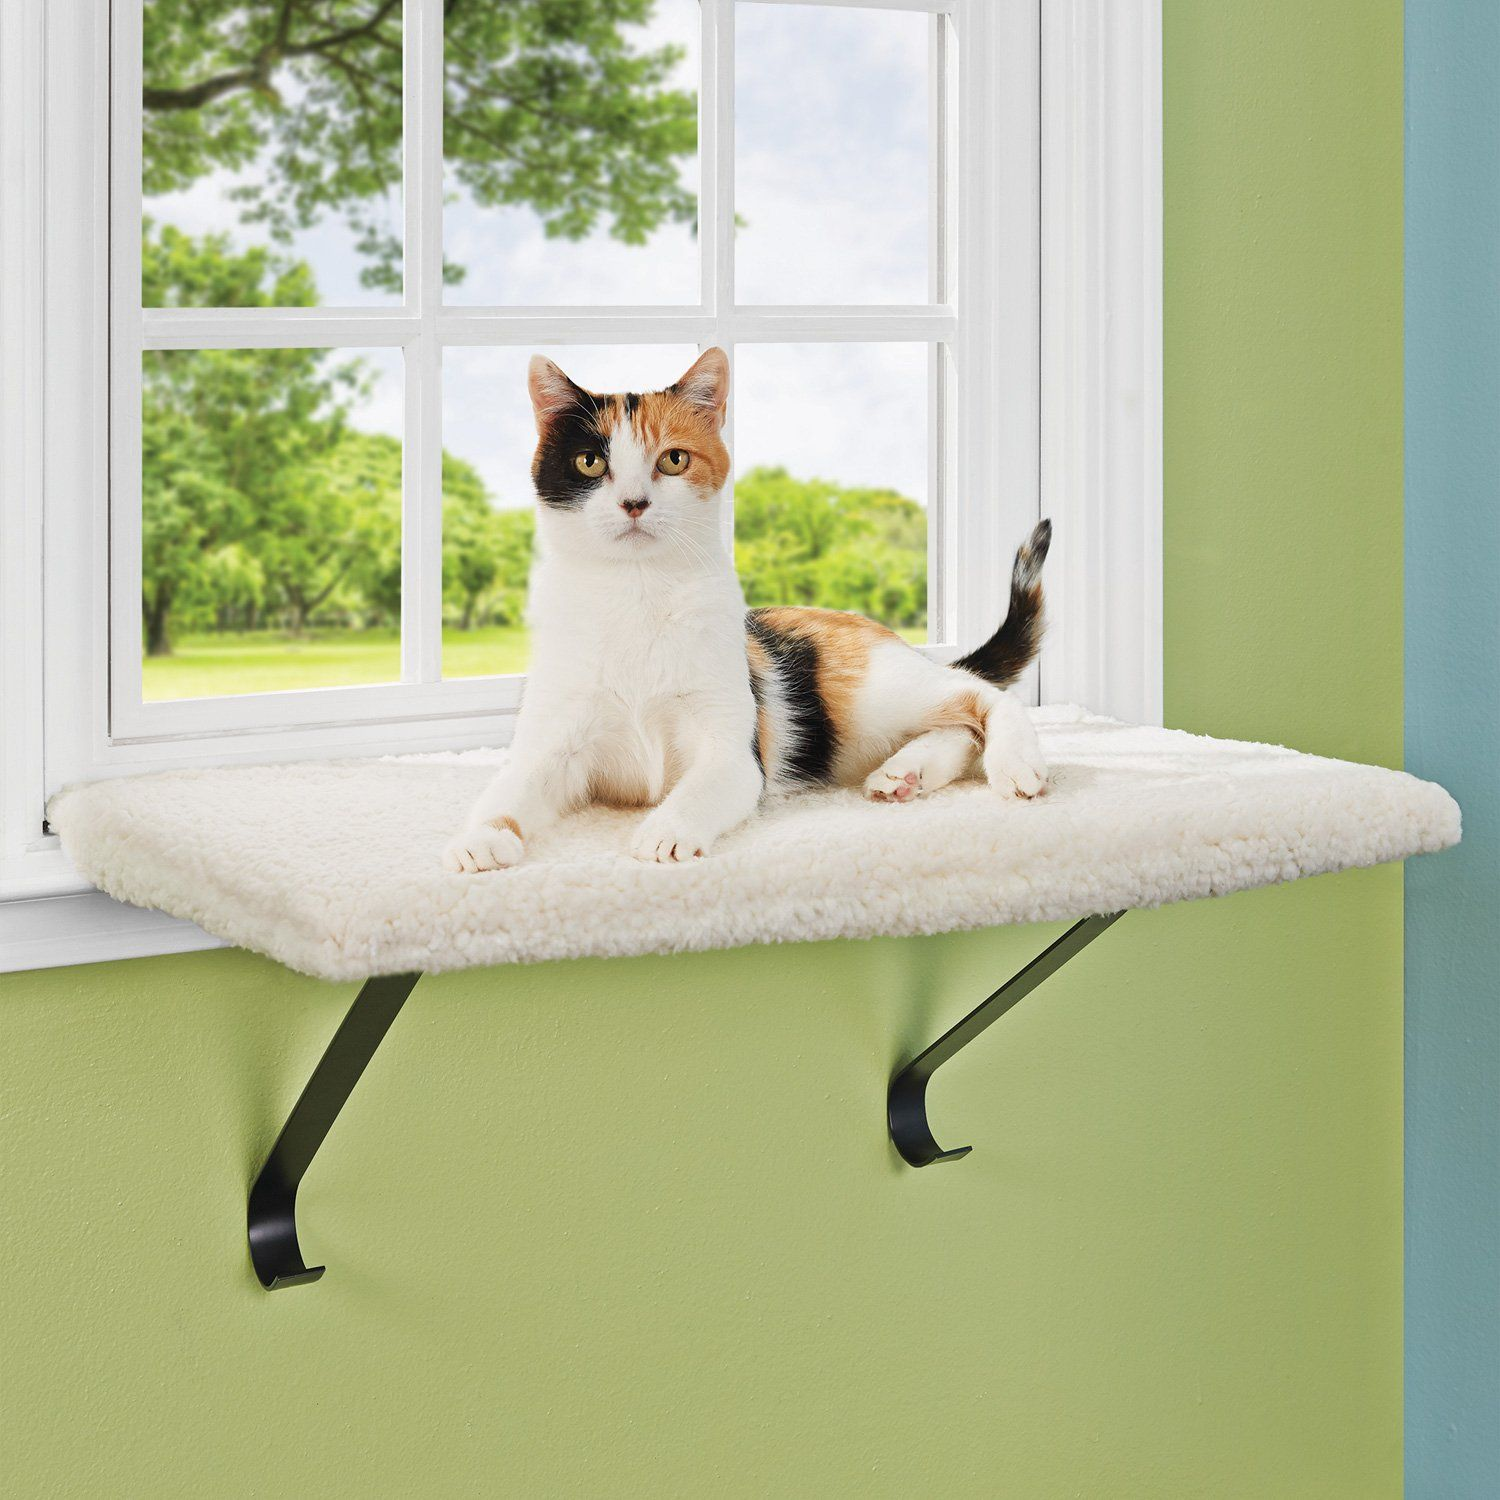 You Amp Me Scout Amp Snooze Window Cat Perch Petco Home